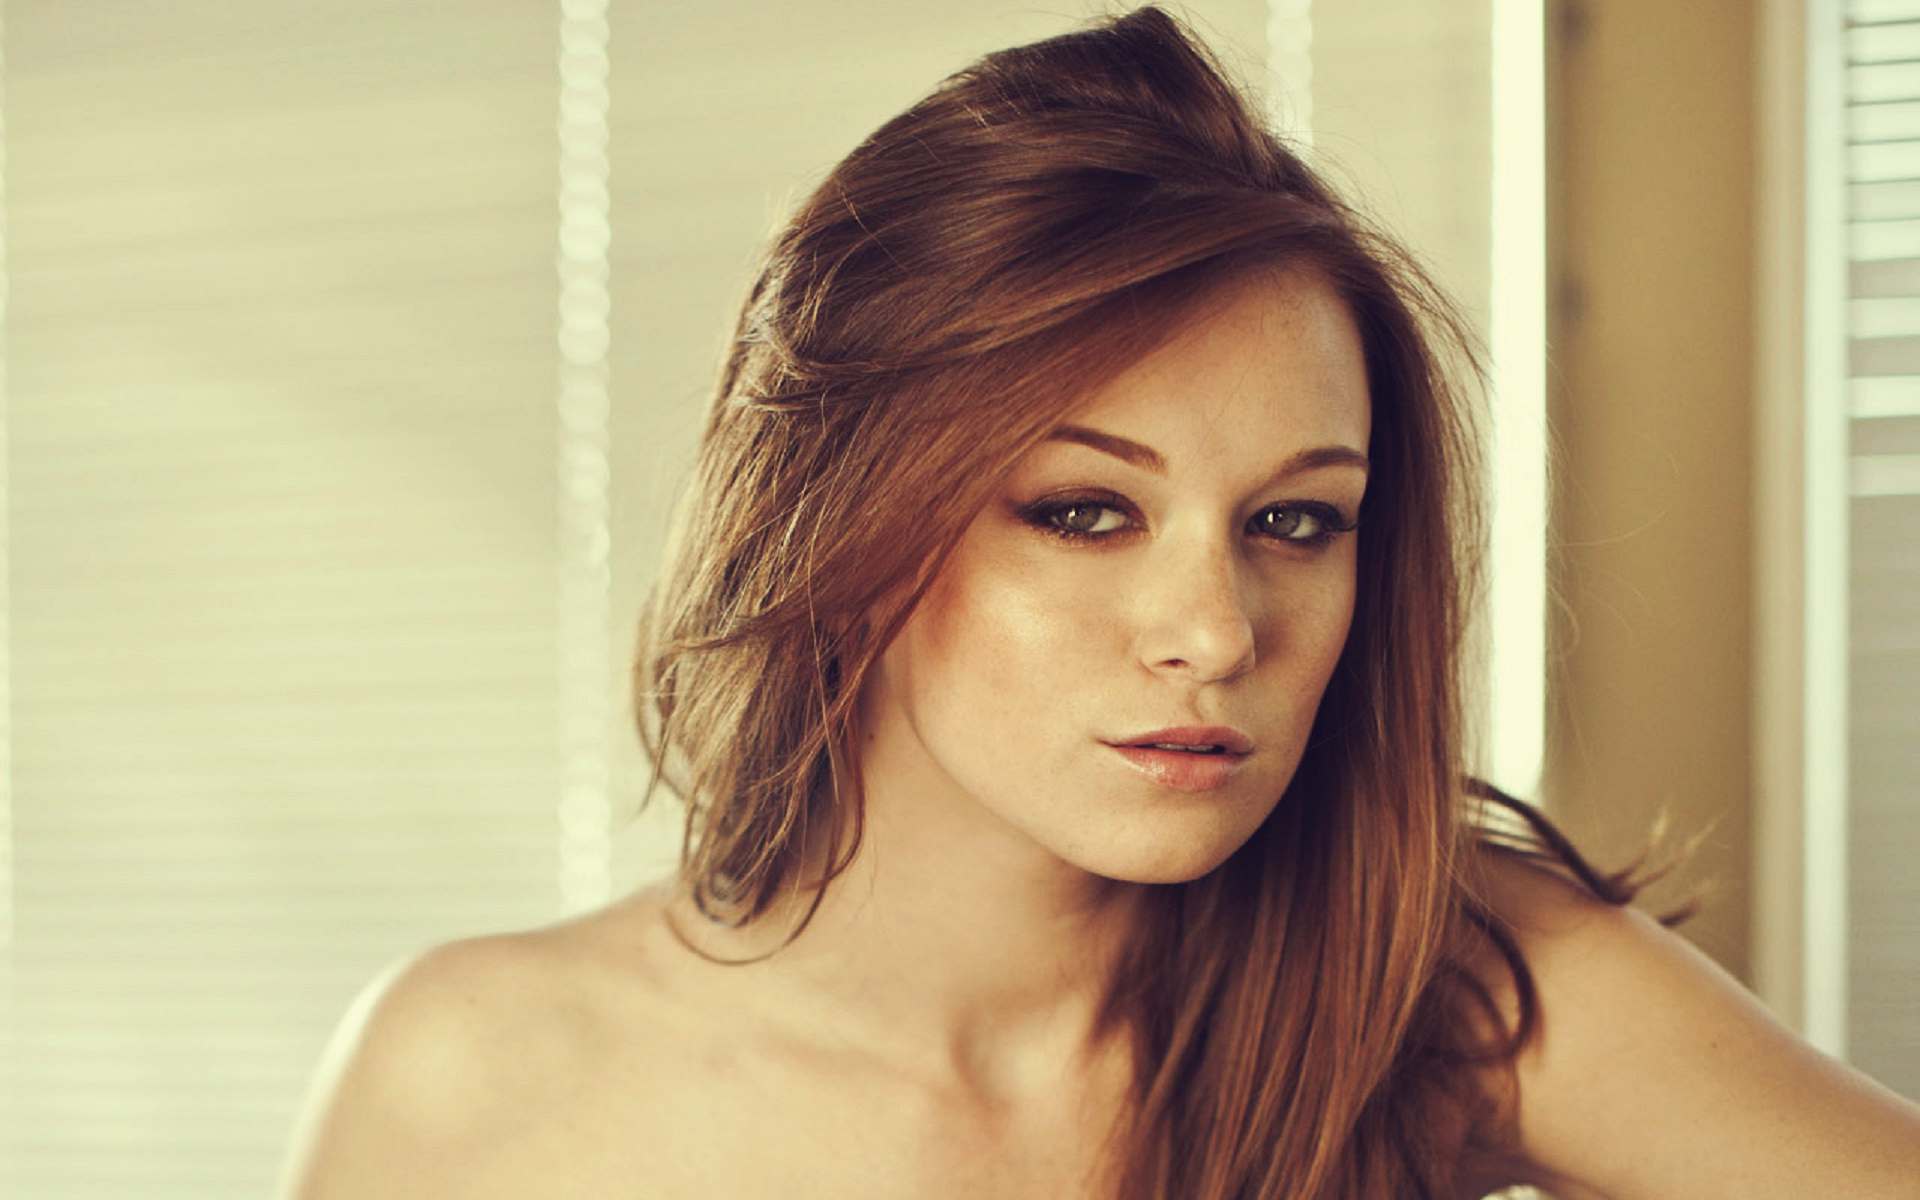 Pictures Of Leanna Decker